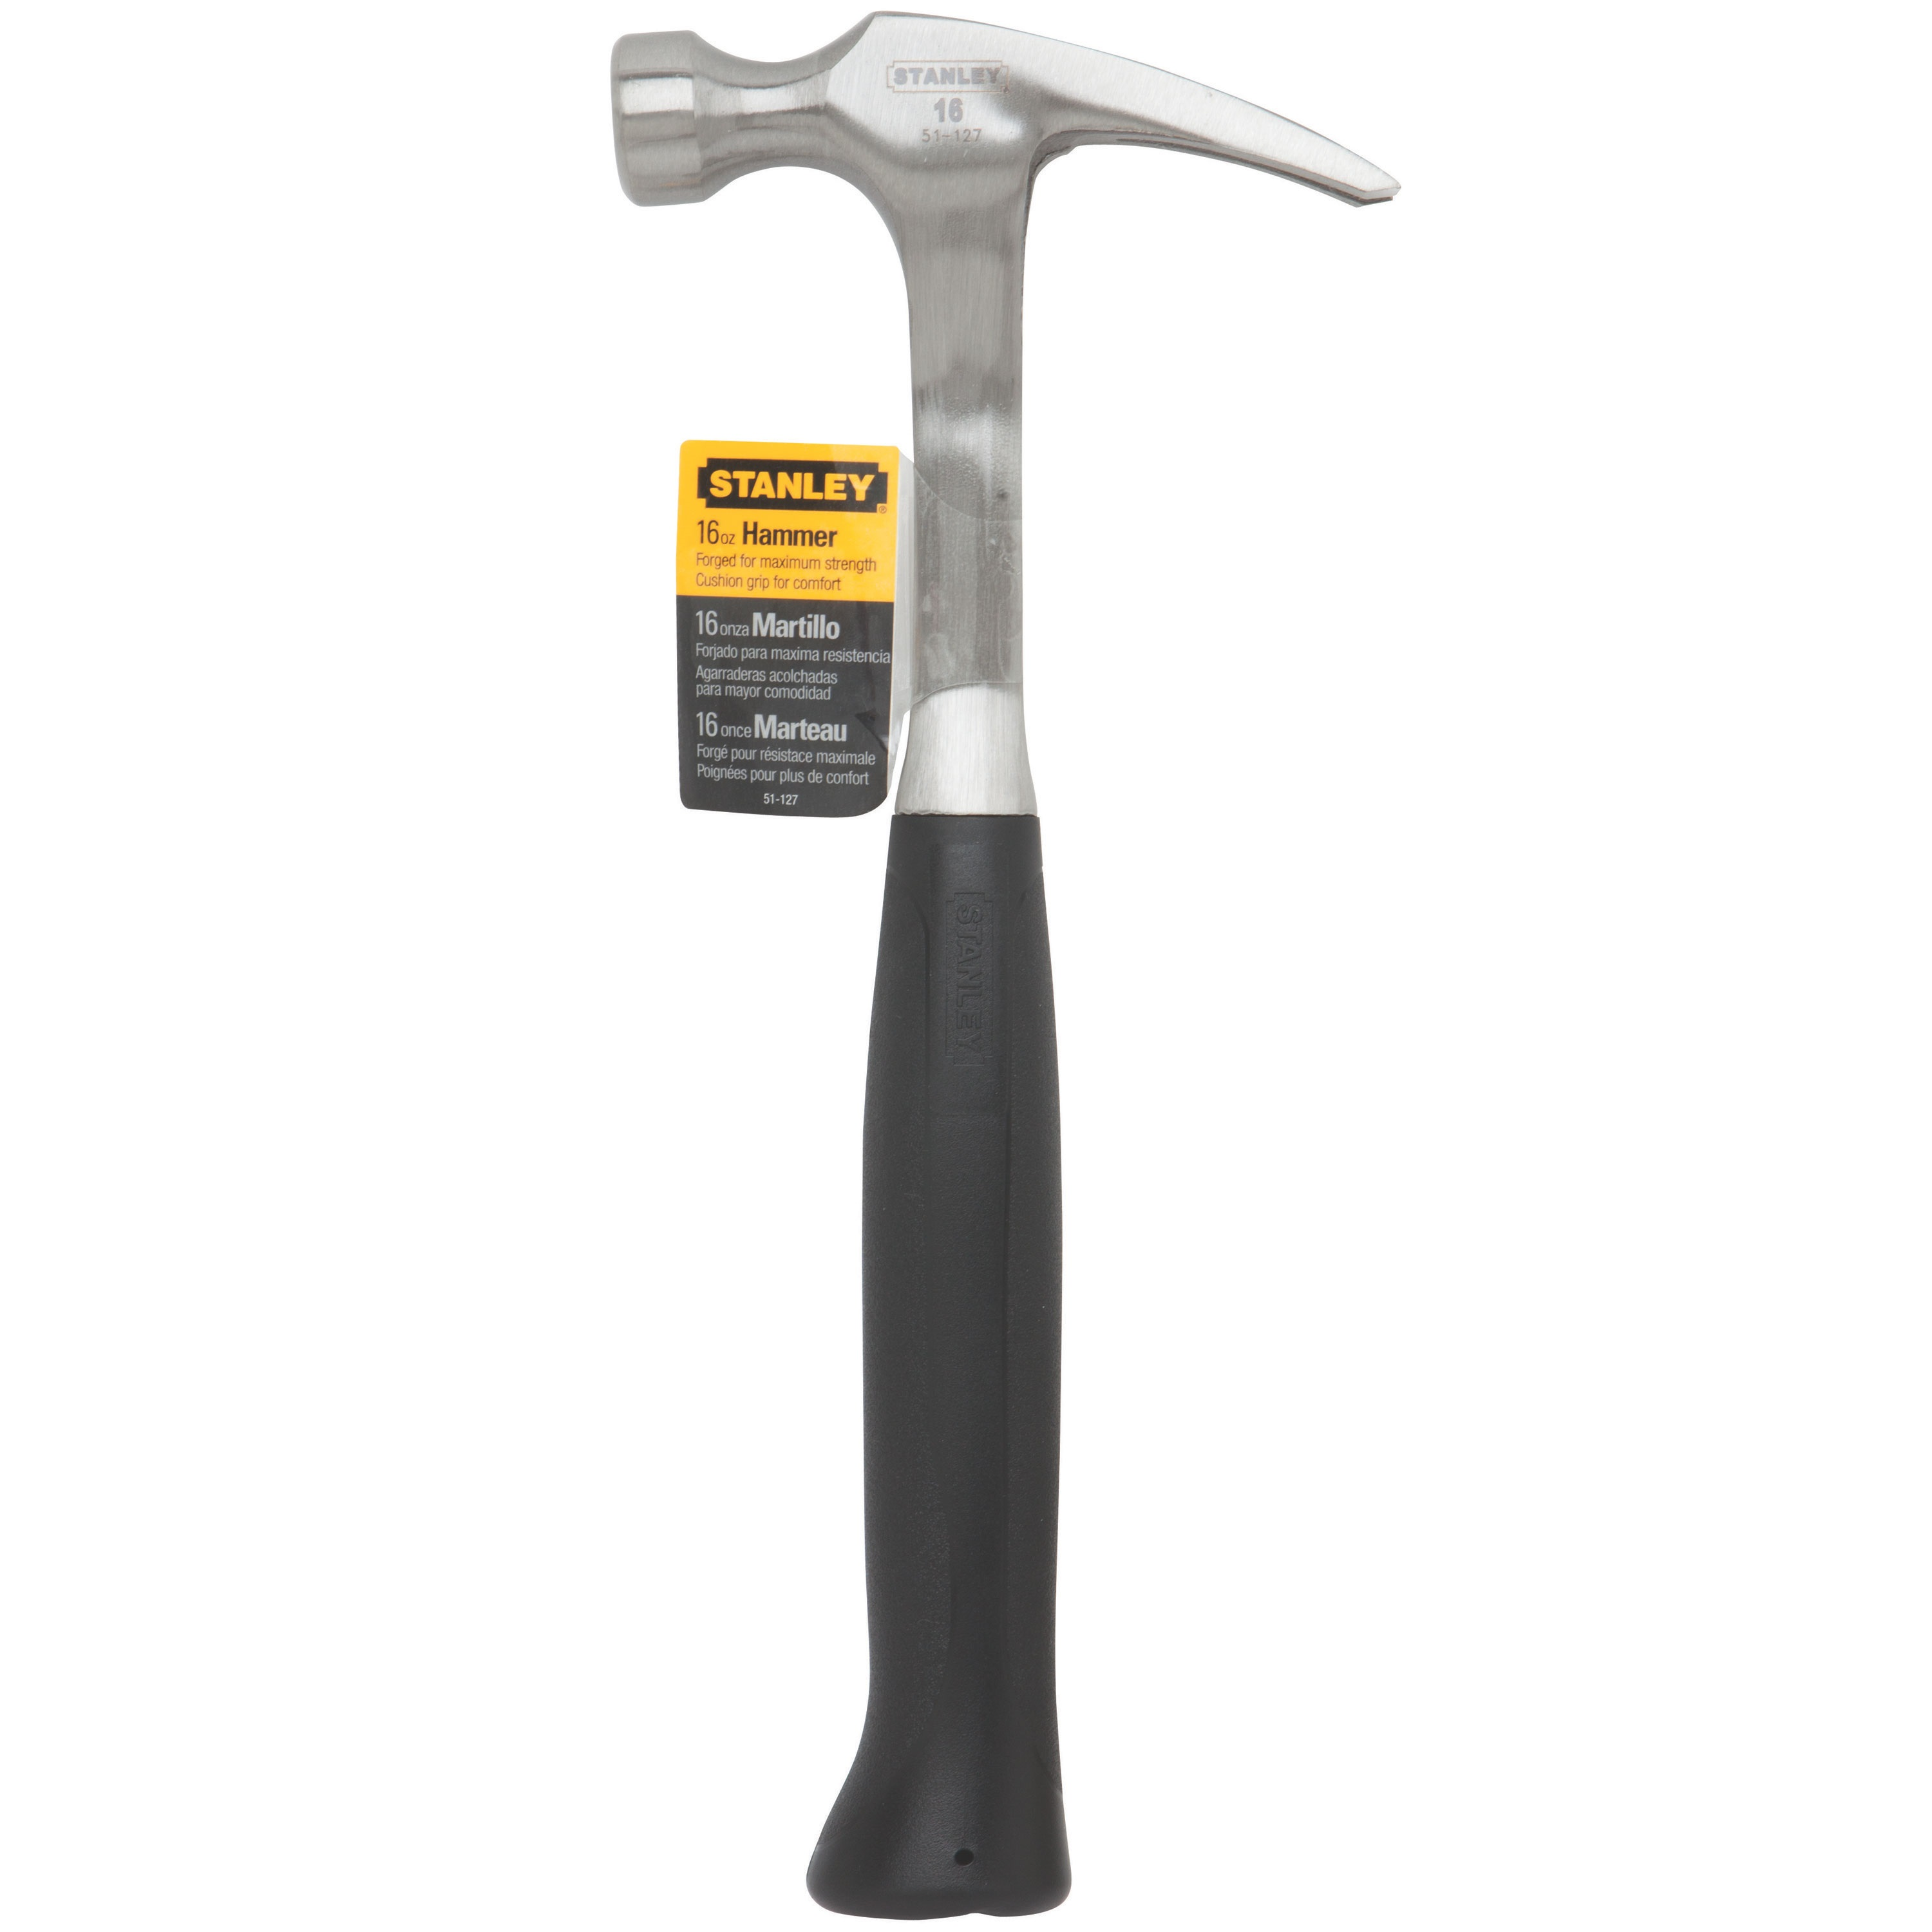 Stanley Tools - 16 oz Rip Claw Steel Nailing Hammer - 51-127